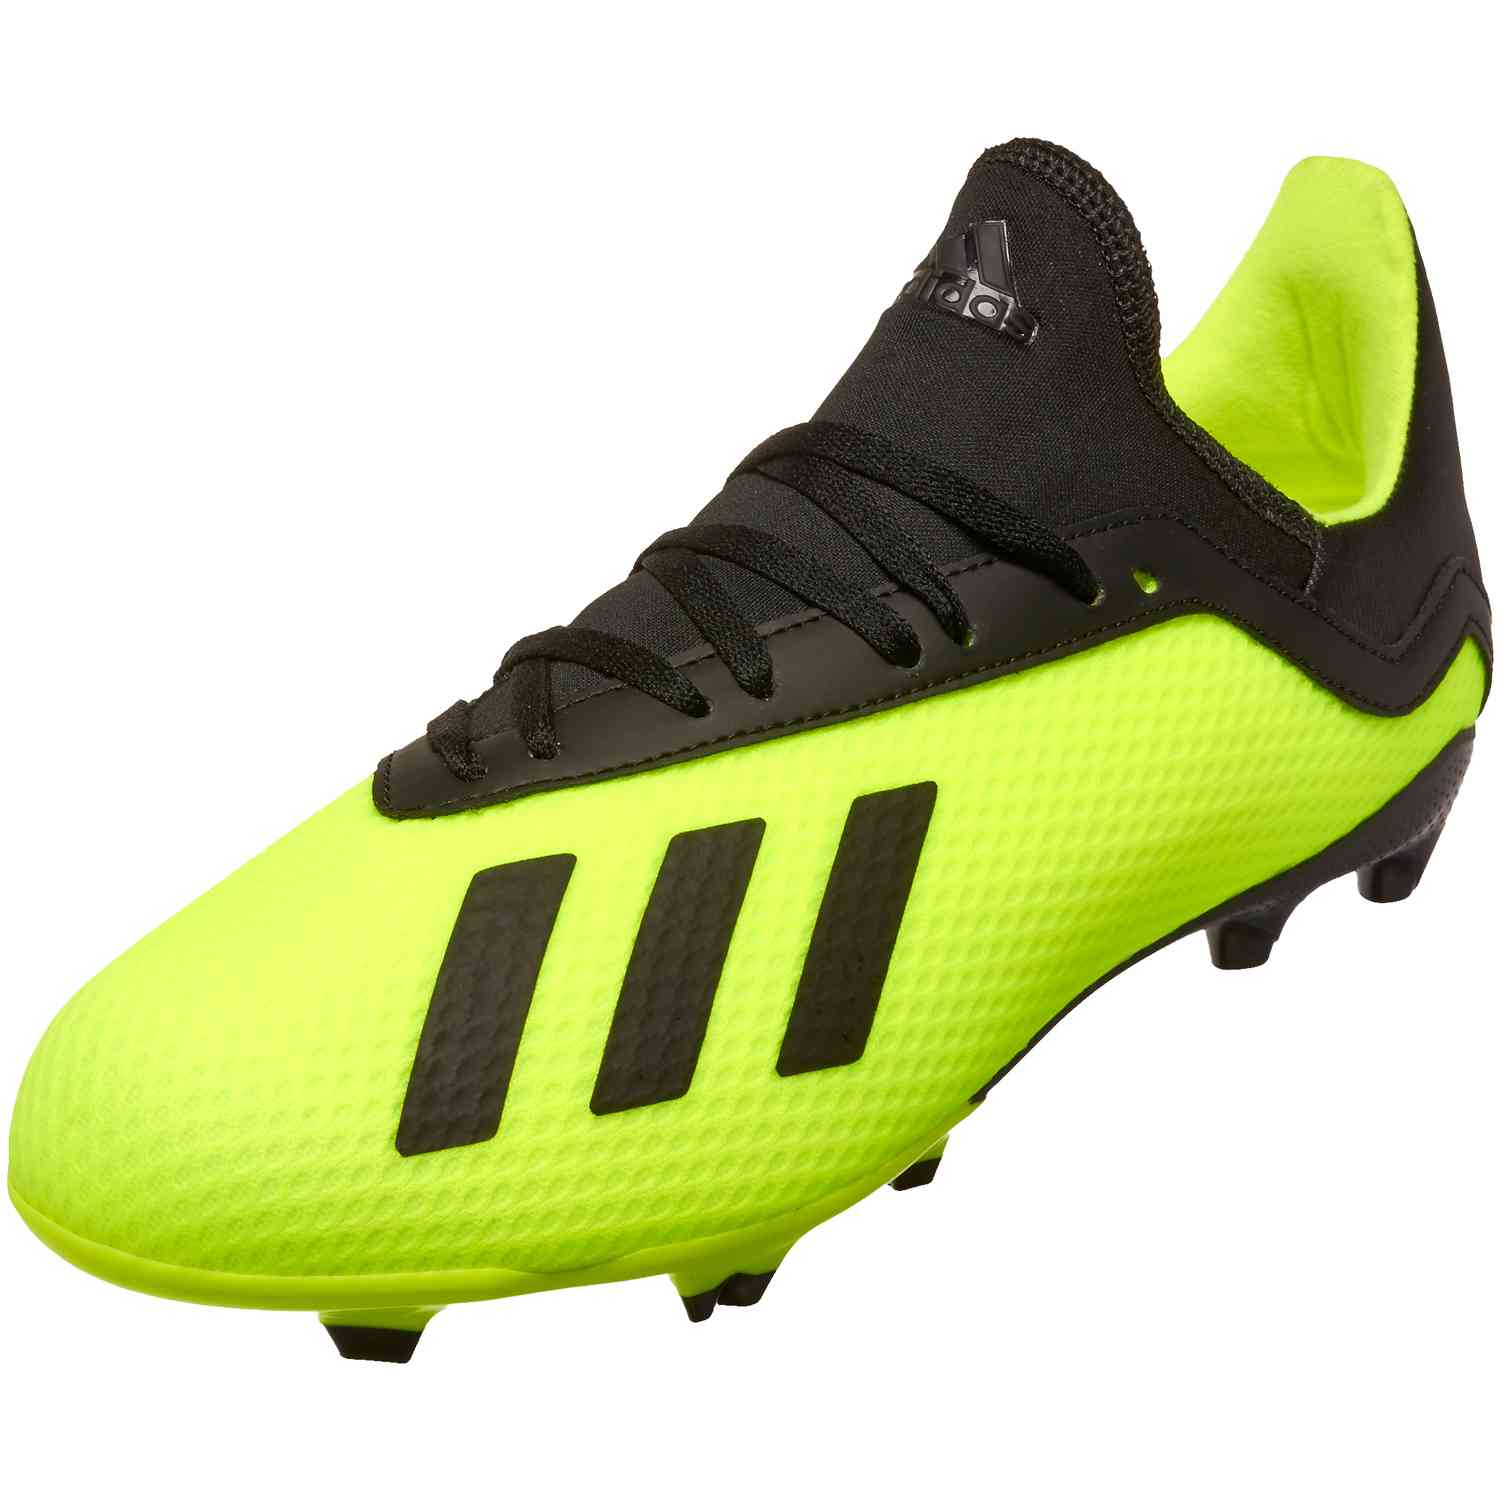 uk availability 75682 9b5f6 adidas X18.3 FG Soccer CleatJ - Solar Yellow/Black | Soccer ...